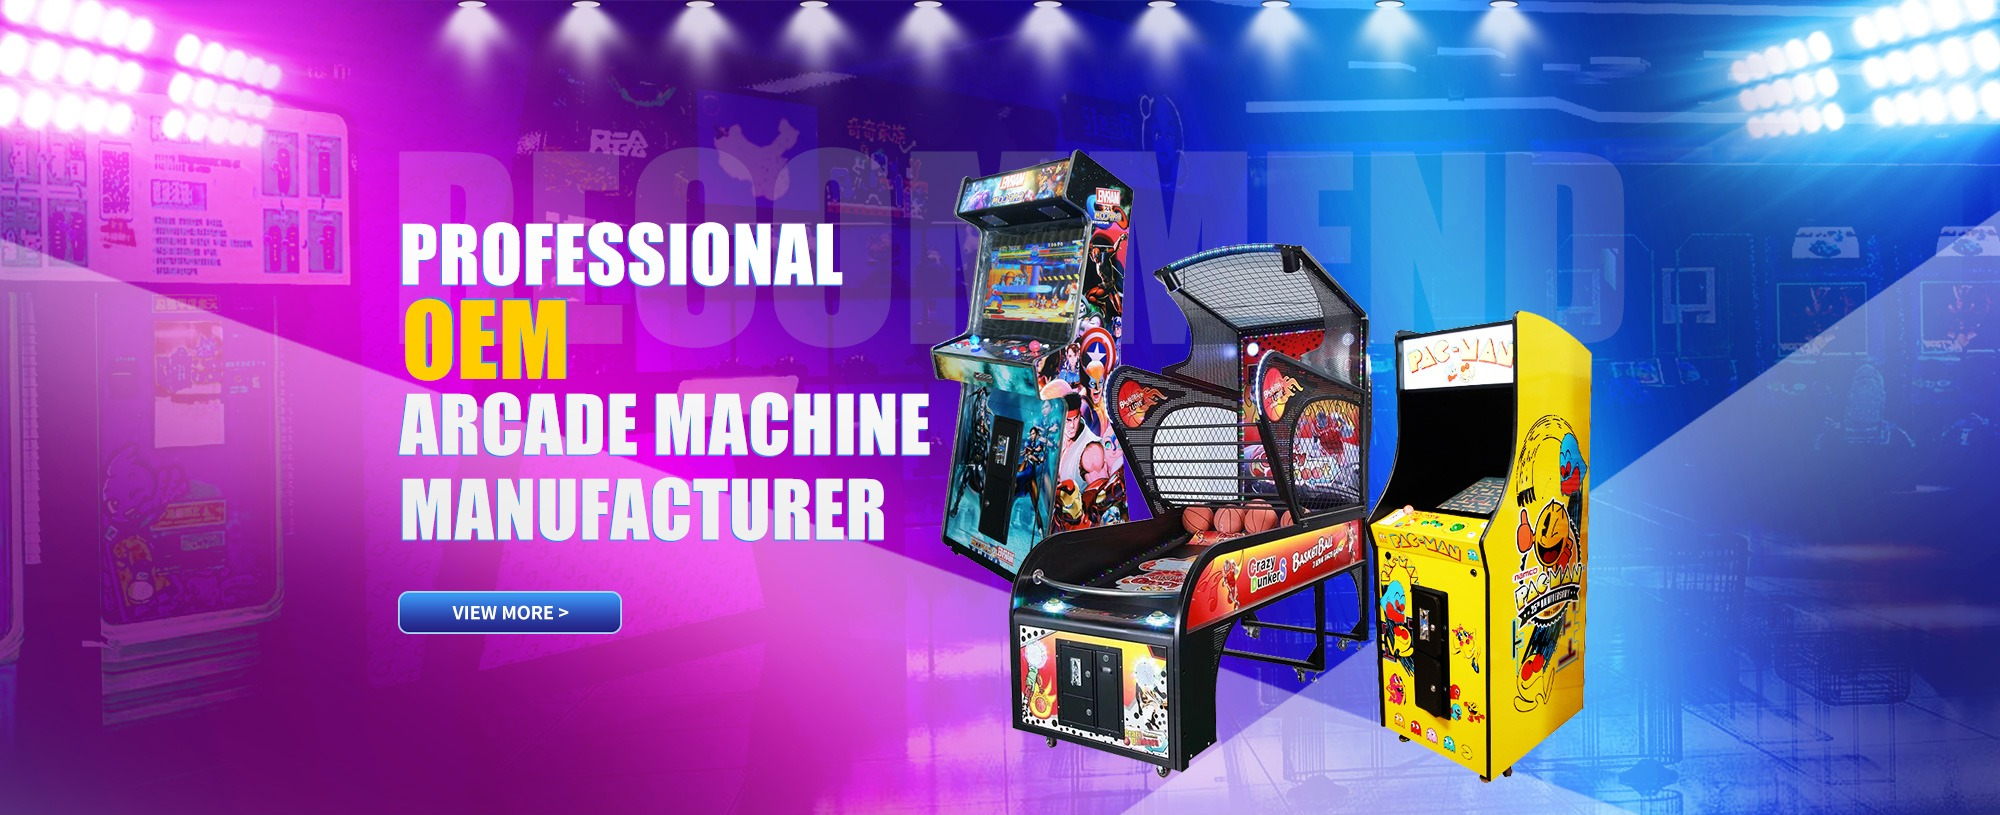 TW-389 Front Entry Single LED Coin Acceptor Mech Replace for Arcade Game Machine